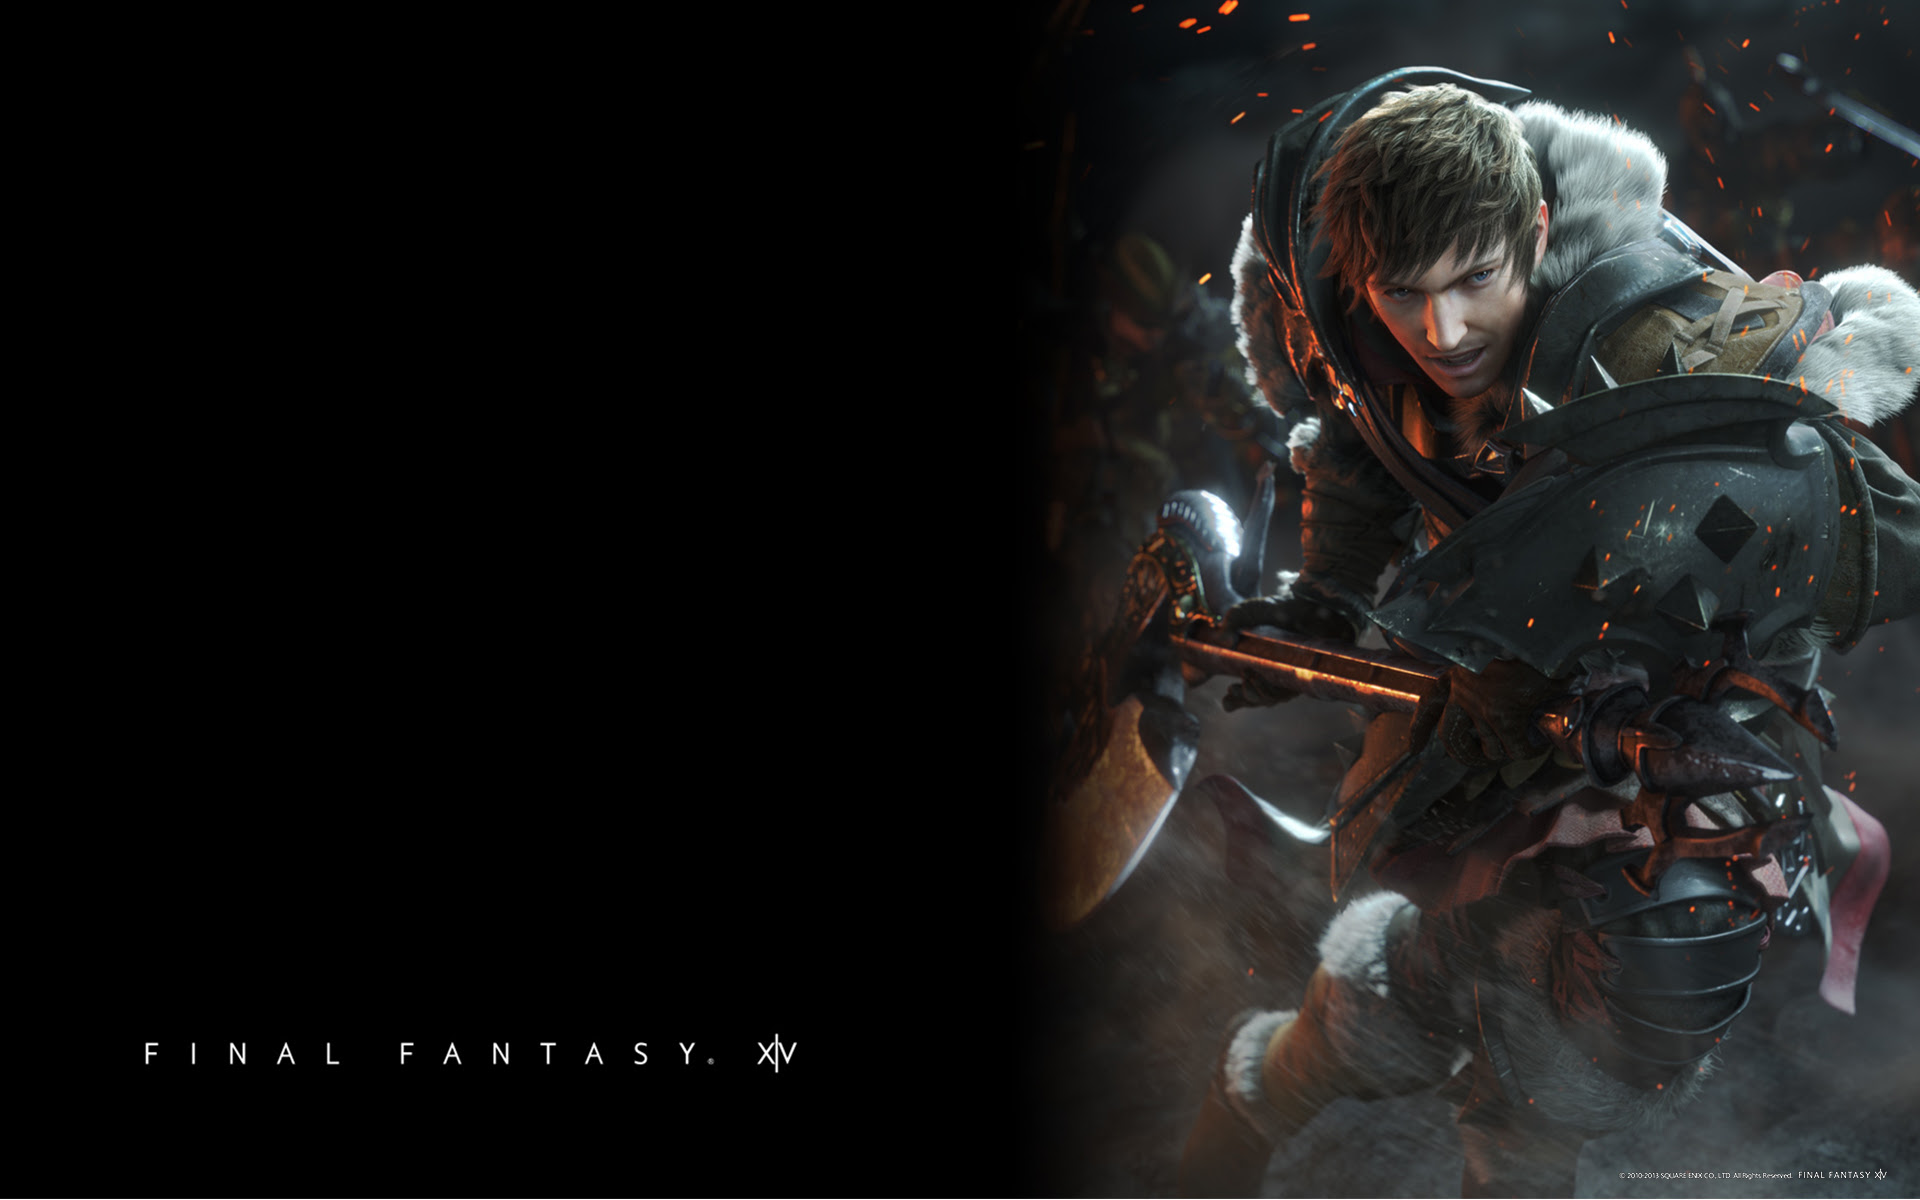 Official Final Fantasy Xiv Custom Themes Now Available For Pc And